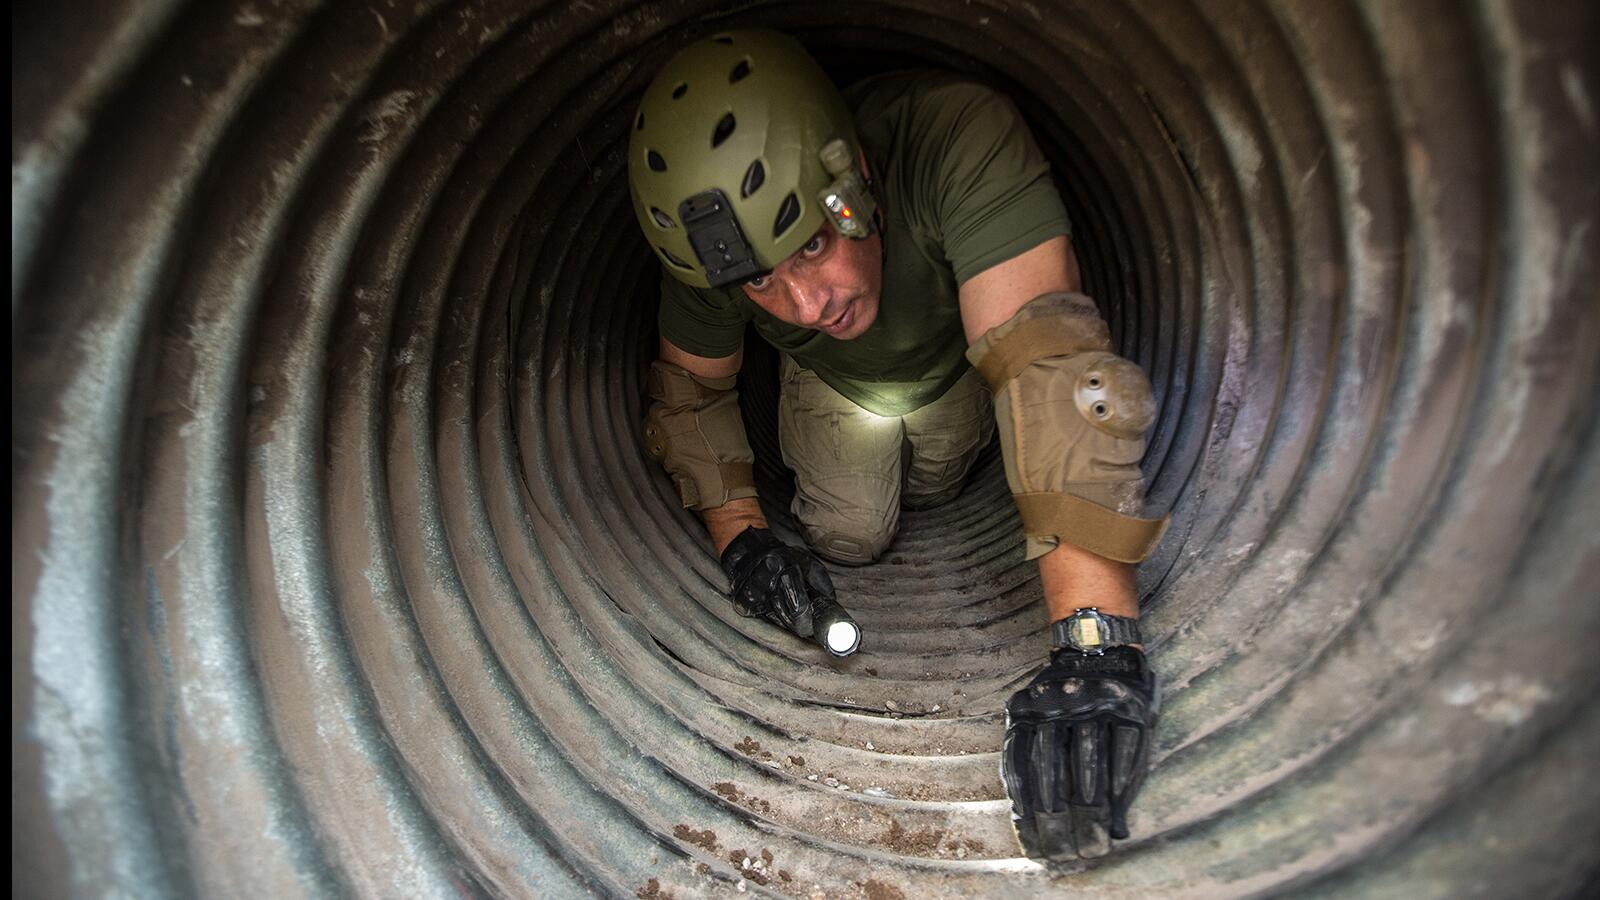 Supervisory Border Patrol Agent Kevin Hecht crawls through the drainage pipe looking for evidence left behind by the illegal tunnelers.